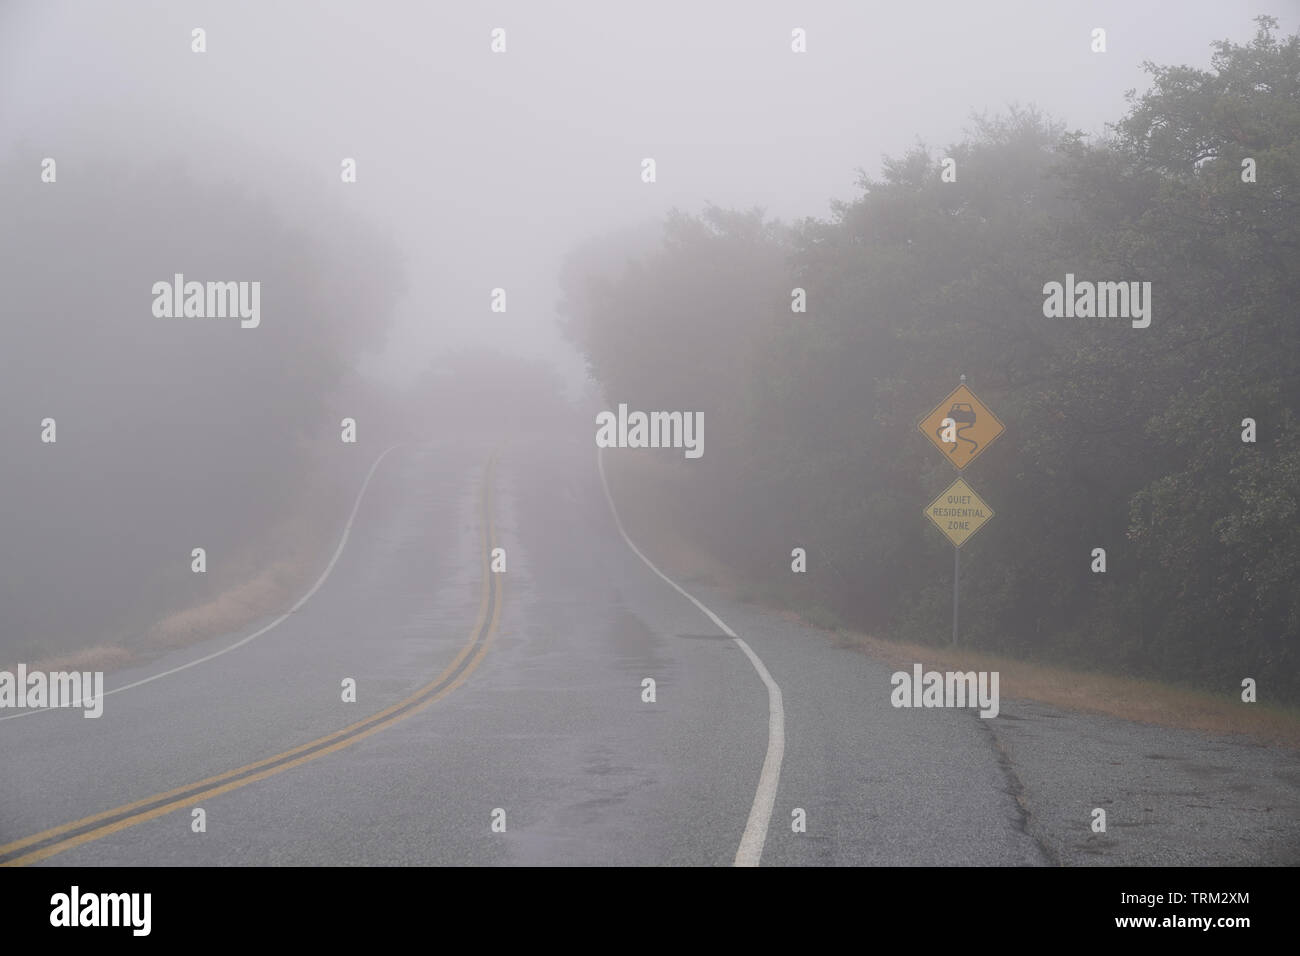 Highway Sign 130 Stock Photos & Highway Sign 130 Stock Images - Alamy